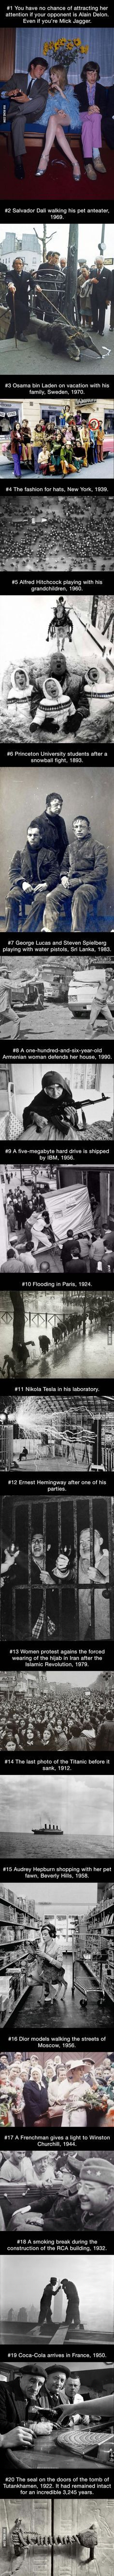 20 utterly unique historical photographs you've probably never seen before